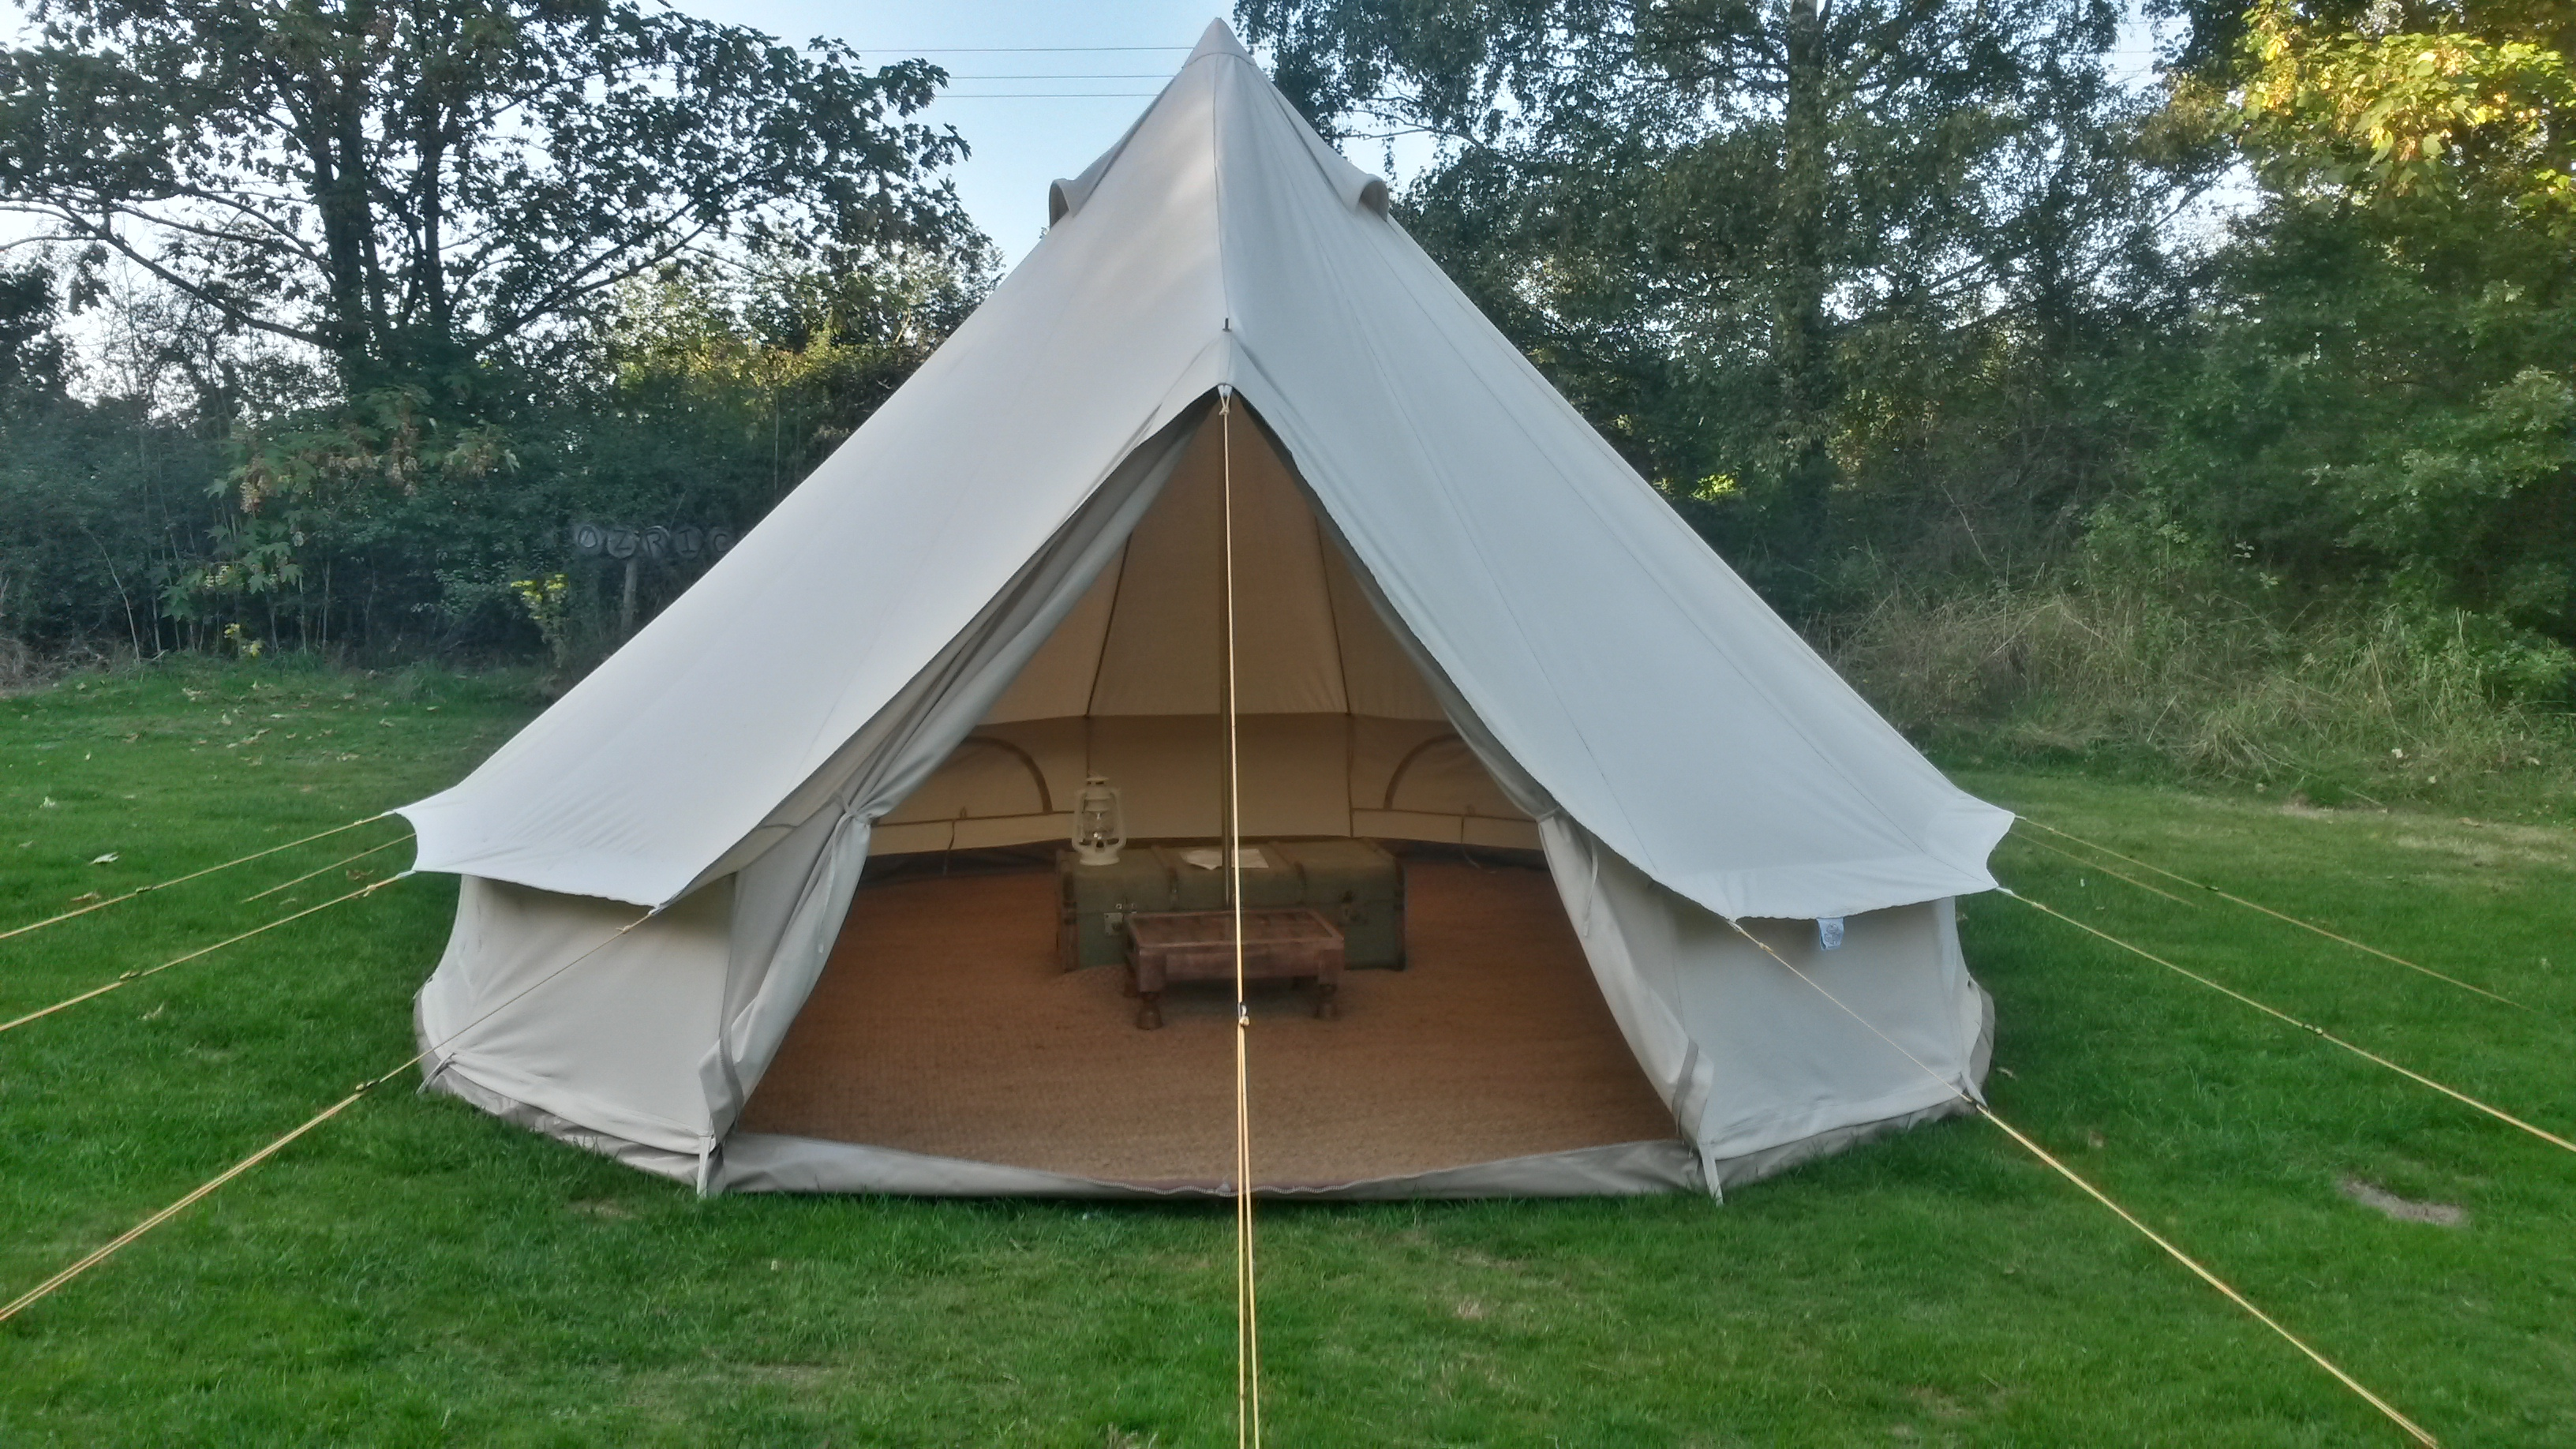 FOR SALE ex-hire 4m Bell Tents - Soulpad 4000-Hybrid G with ZIG & Buy | New Forest Bell Tents